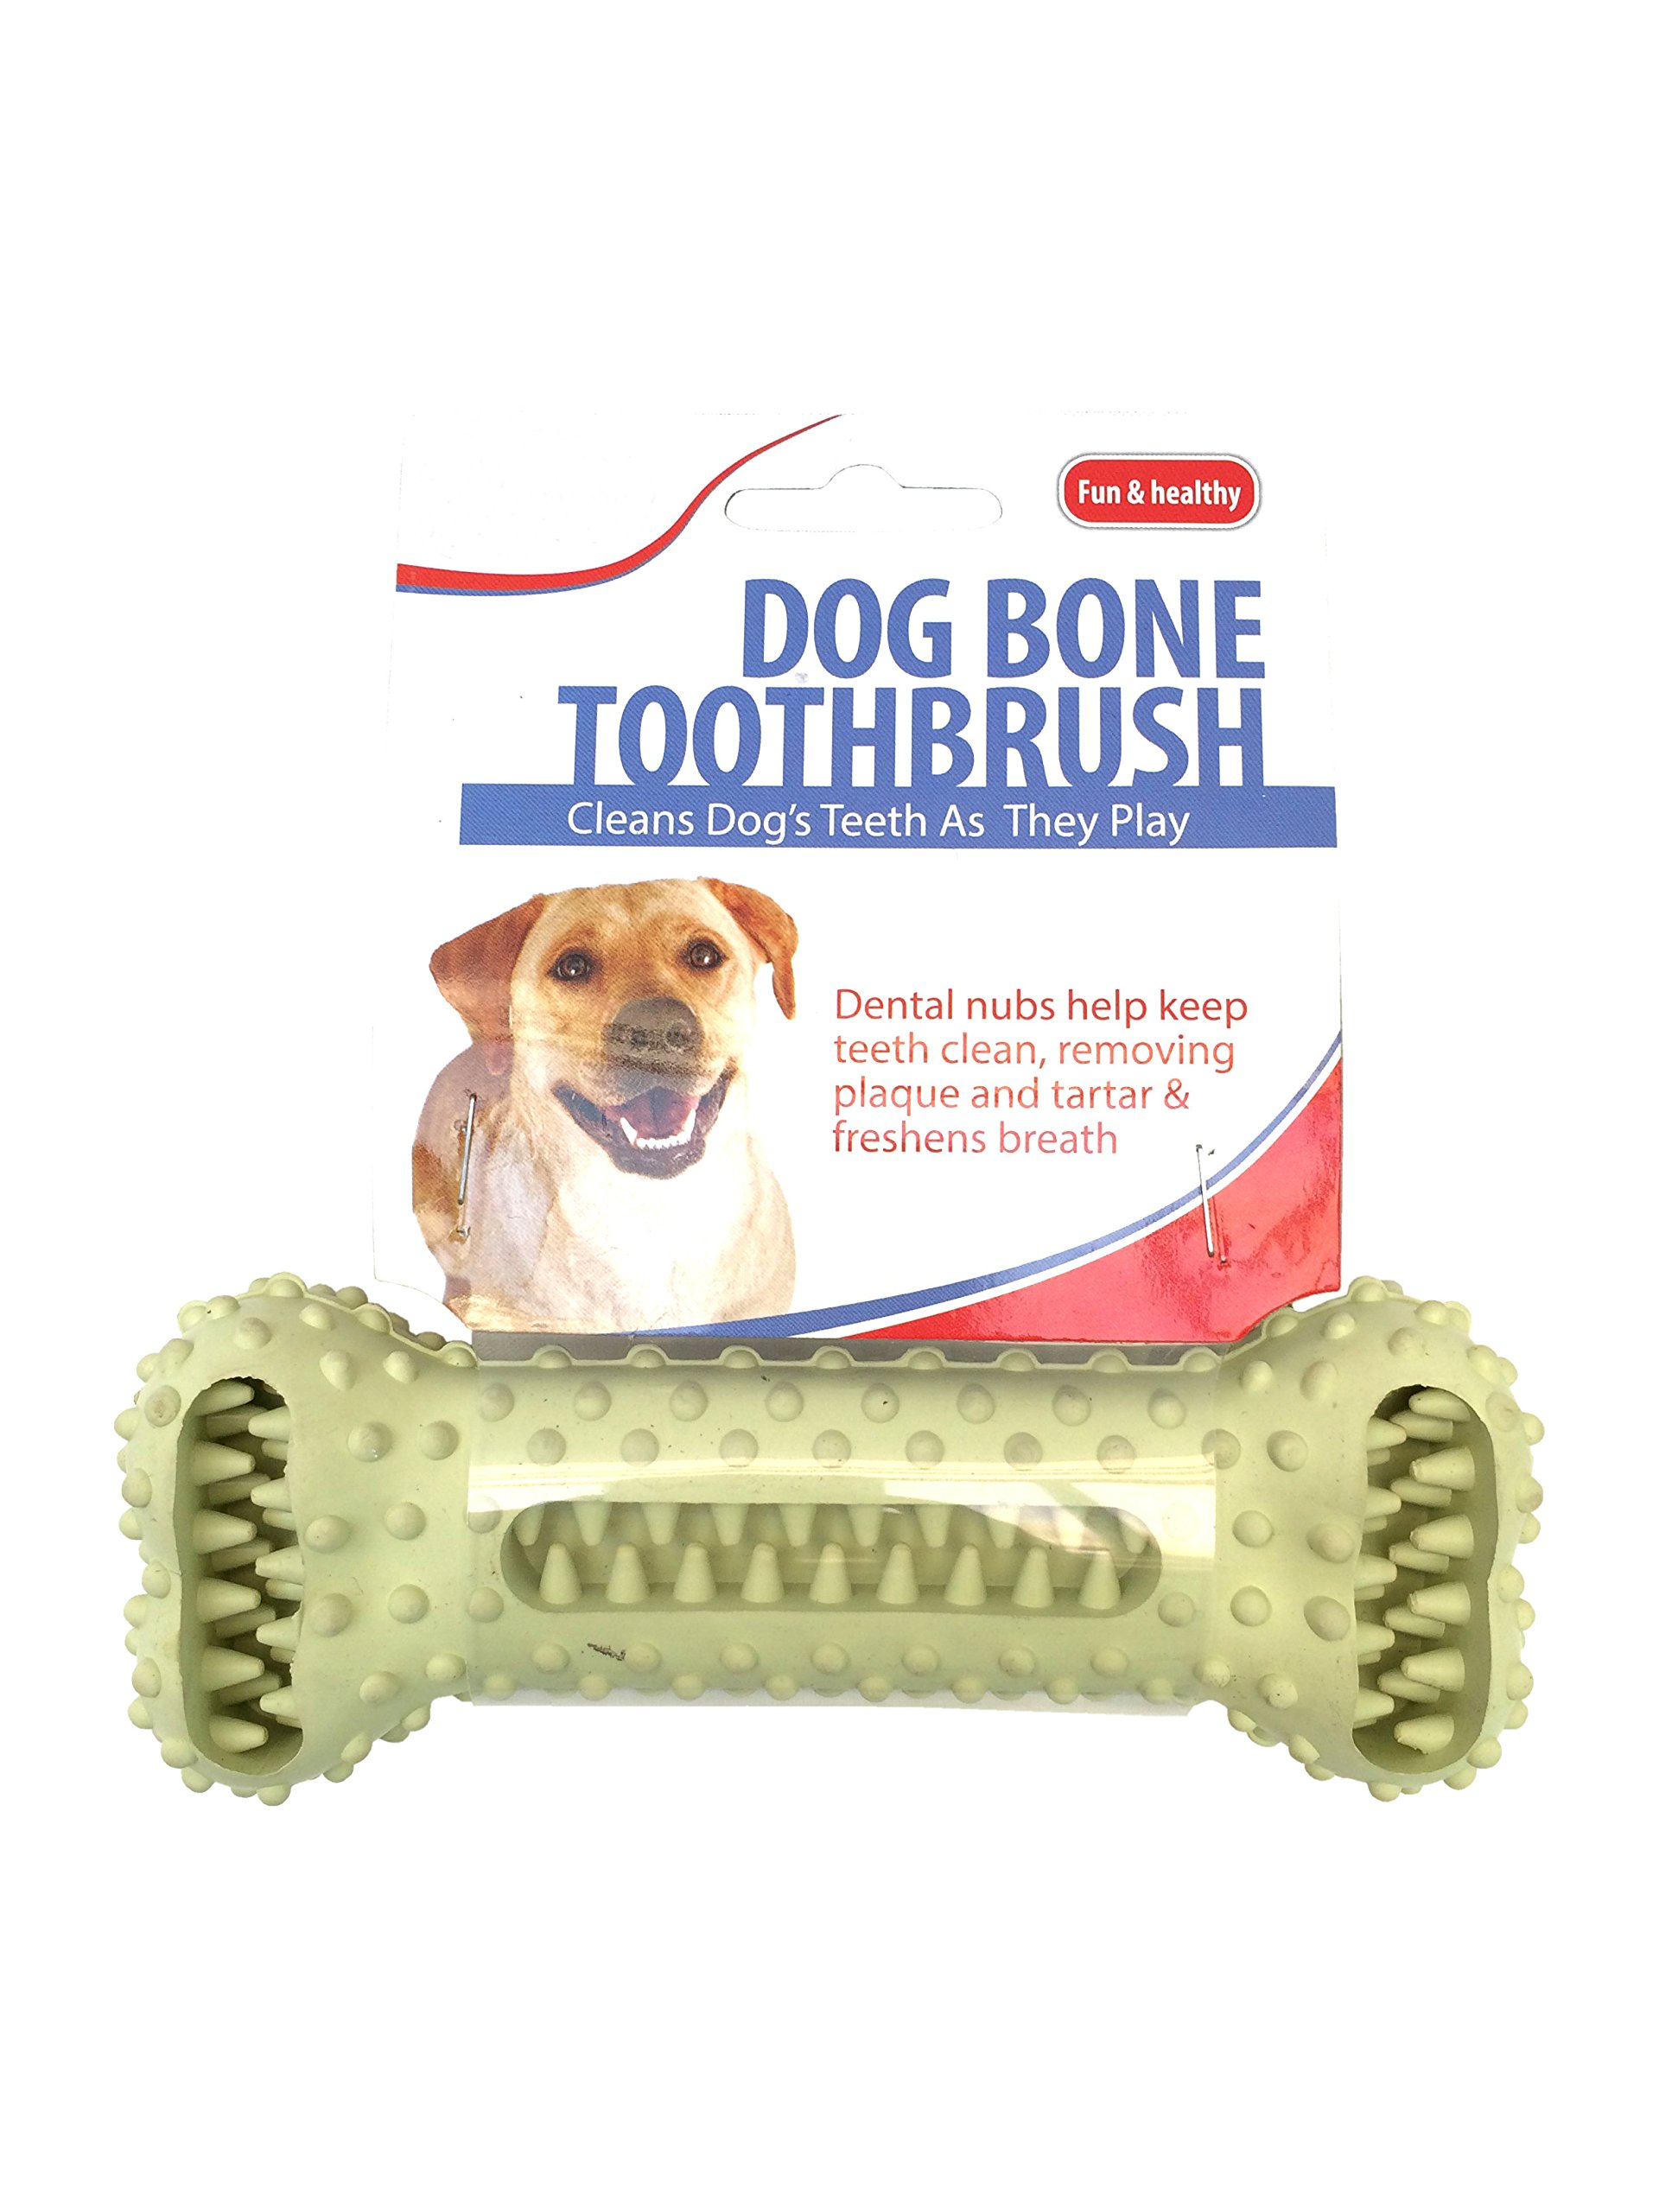 New Dog Bone Toothbrush Dental Care Removes Plaque Tarter Cleans Mouth Hygiene